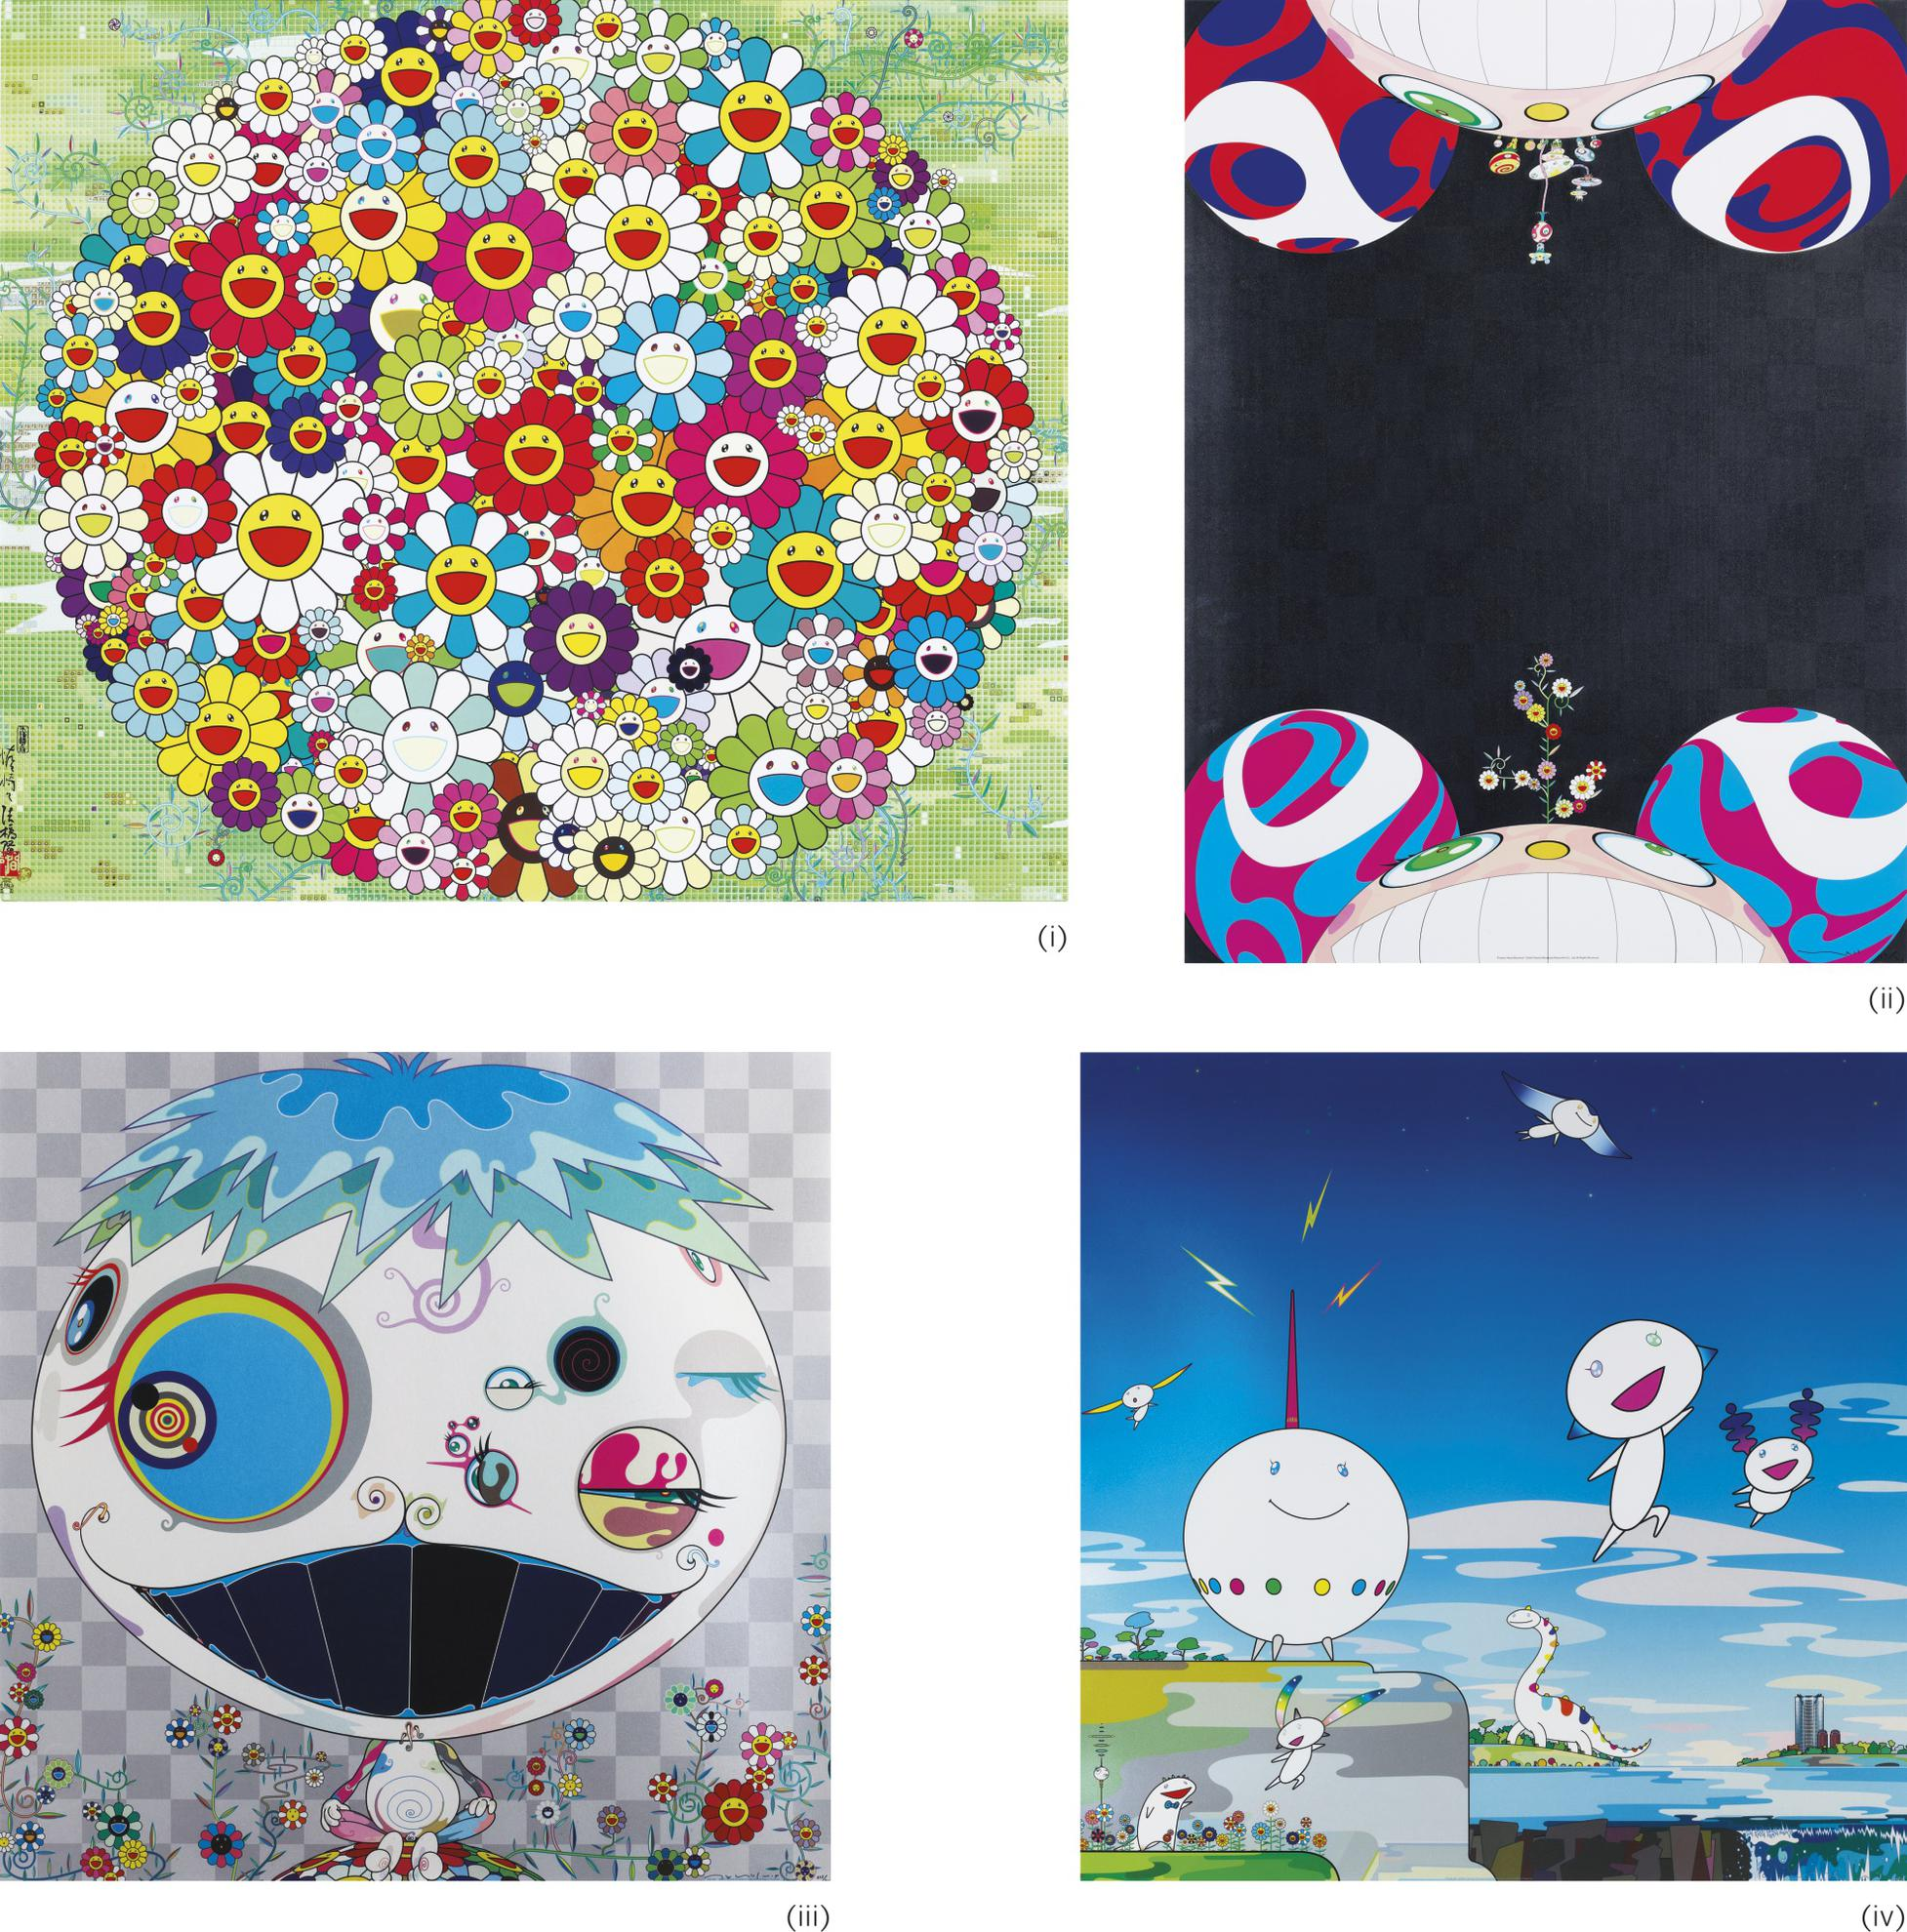 Takashi Murakami-(i) Open Your Hands Wide/ (ii) Flowers Have Bloomed/ (iii) Jelly Fish/ (iv) Planet 66 (Four Works)-2010